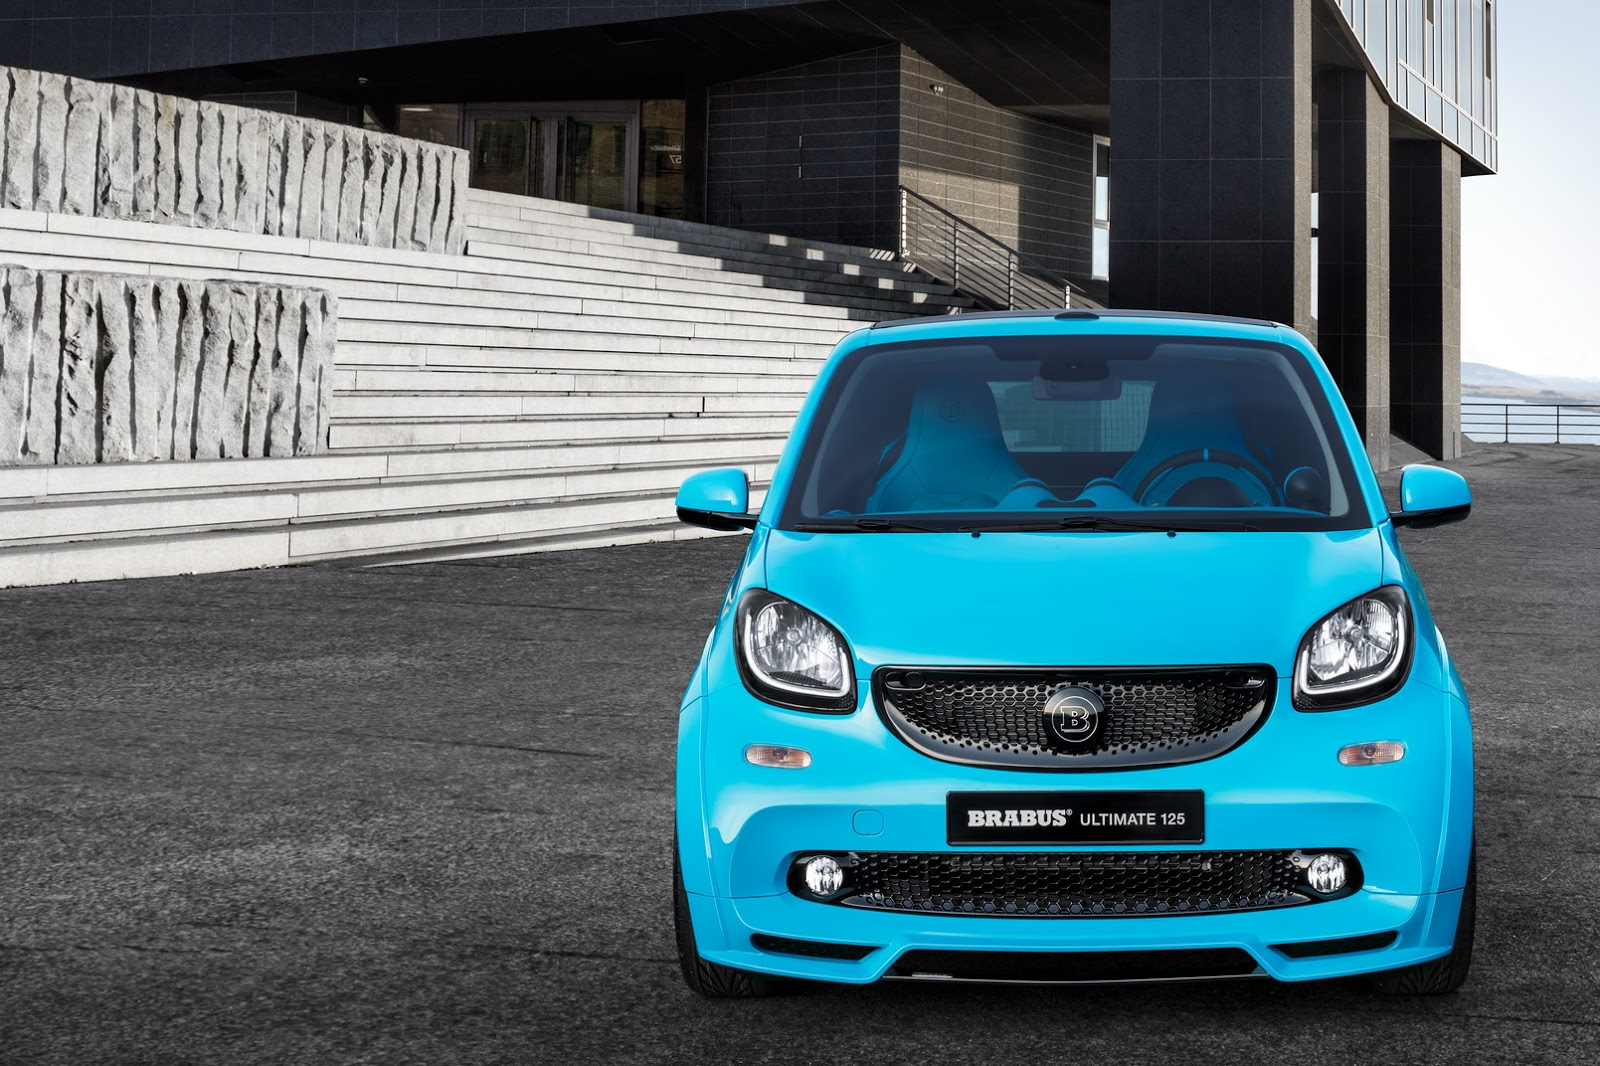 Brabus_Smart_Fortwo_Ultimate_125_02